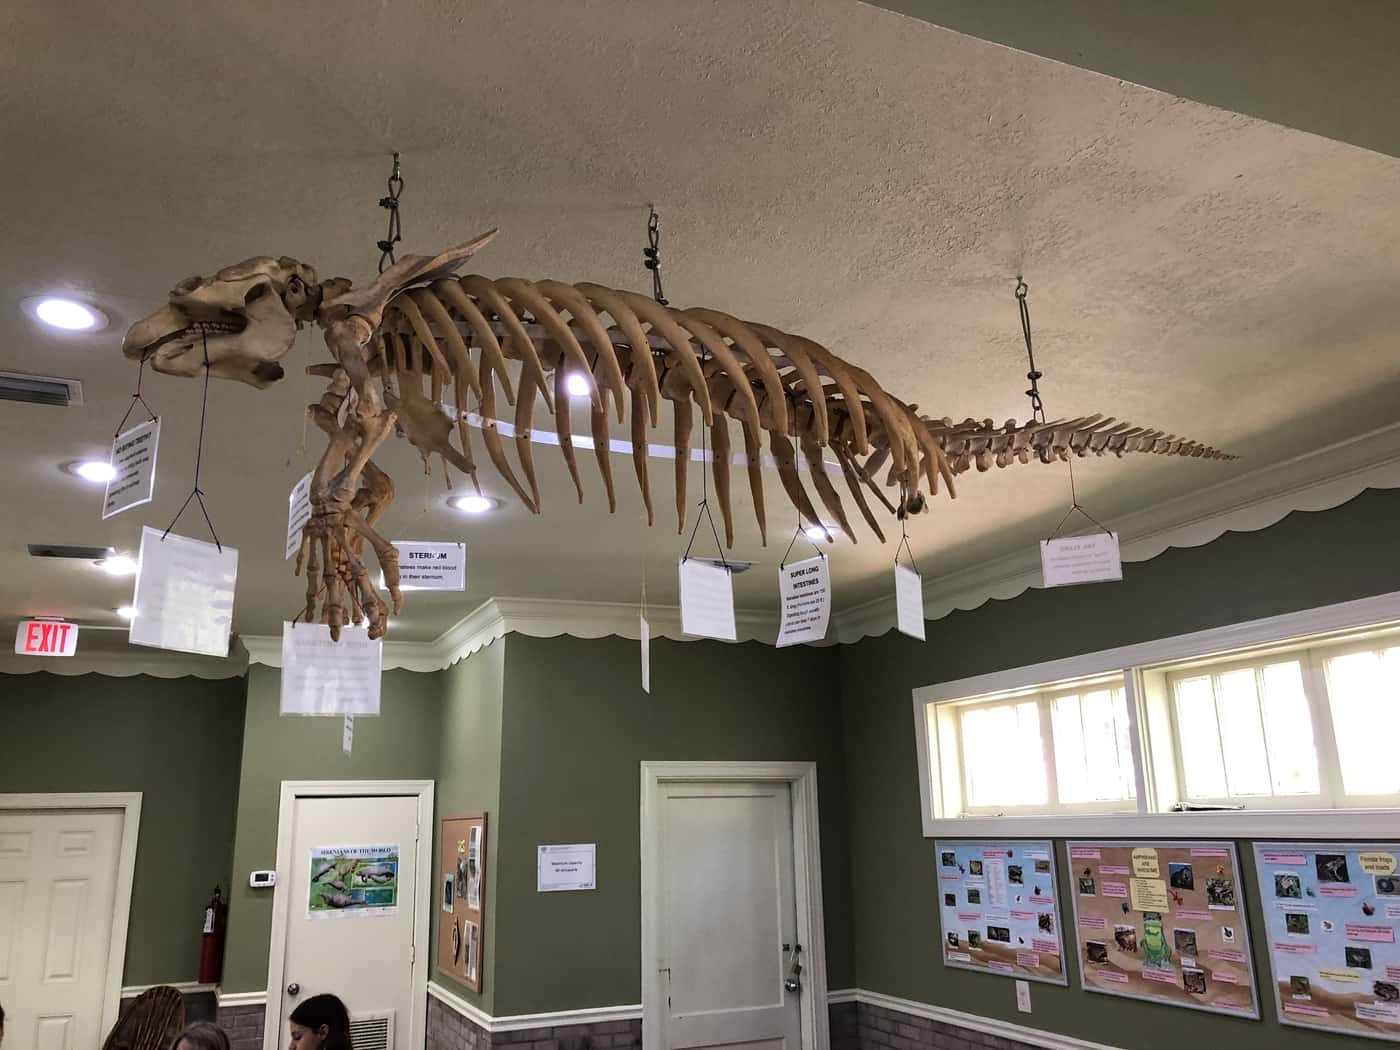 Manatee skeleton at Discovery Center Homosassa Springs